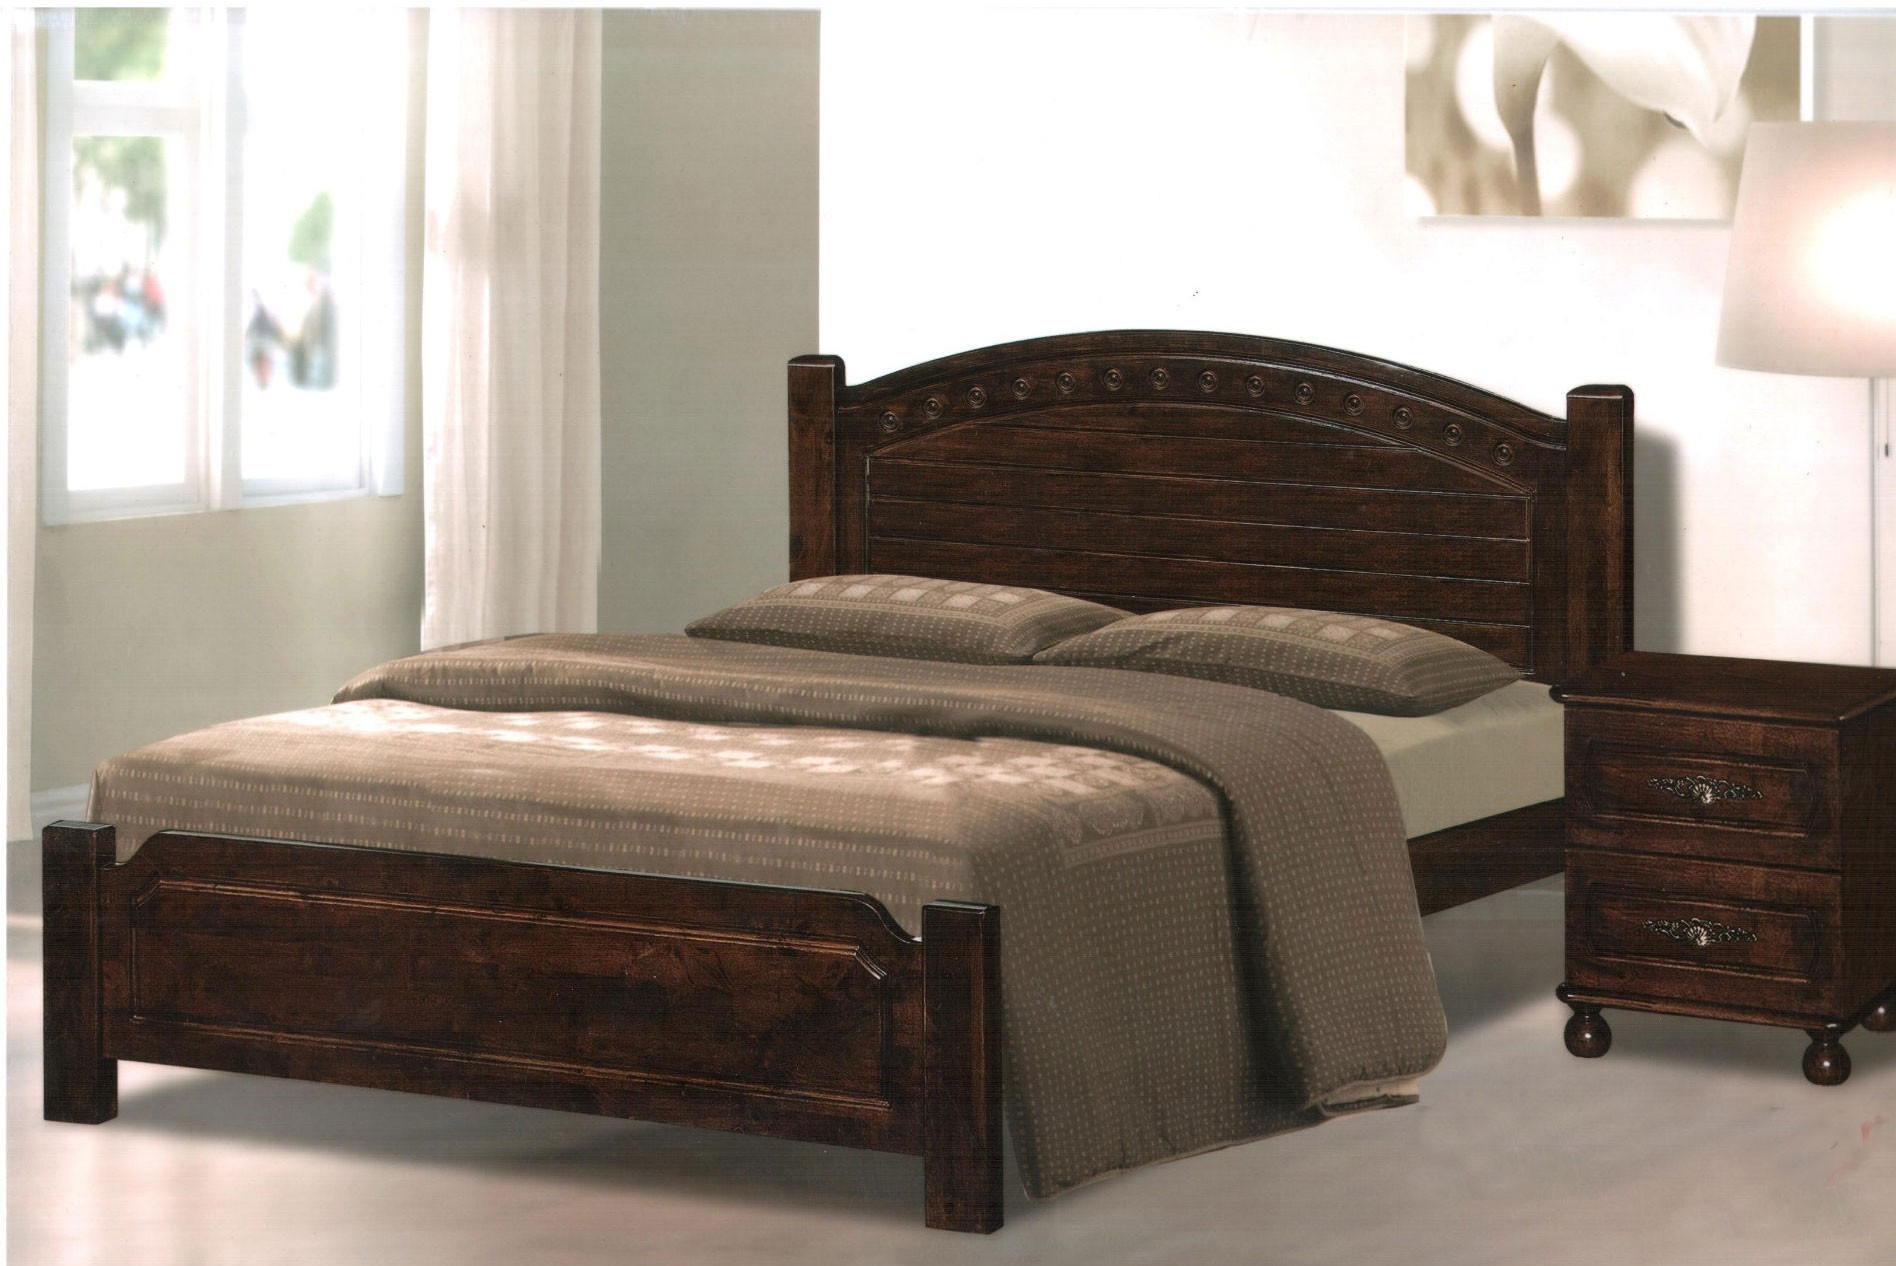 full size wooden bed frame with headboard dark lacquered mahogany wood full bed frame with arched headboard, XHILQZU